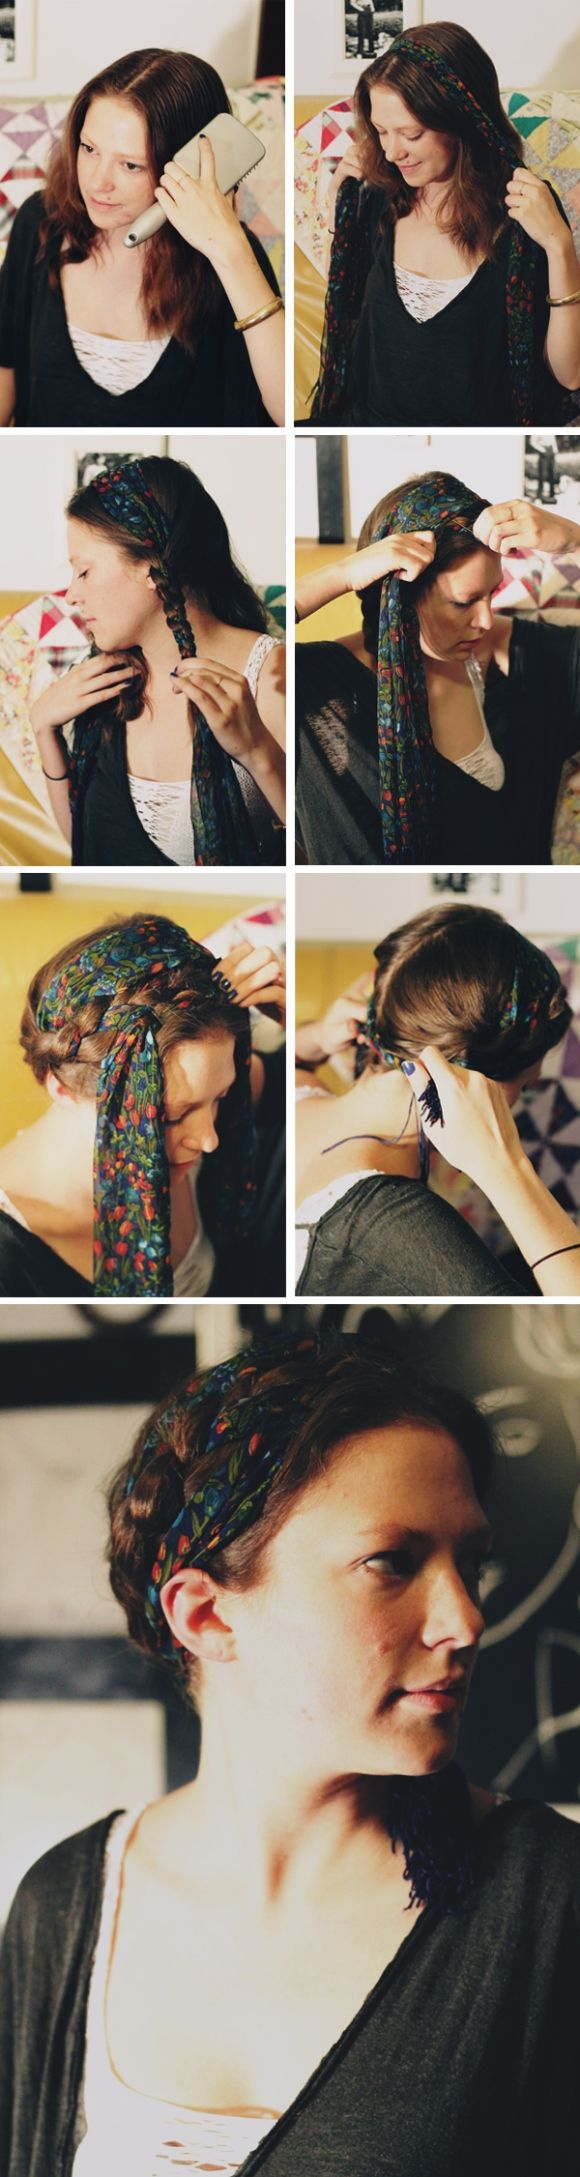 3 Scarf Hairstyles We Love & How to Do Them